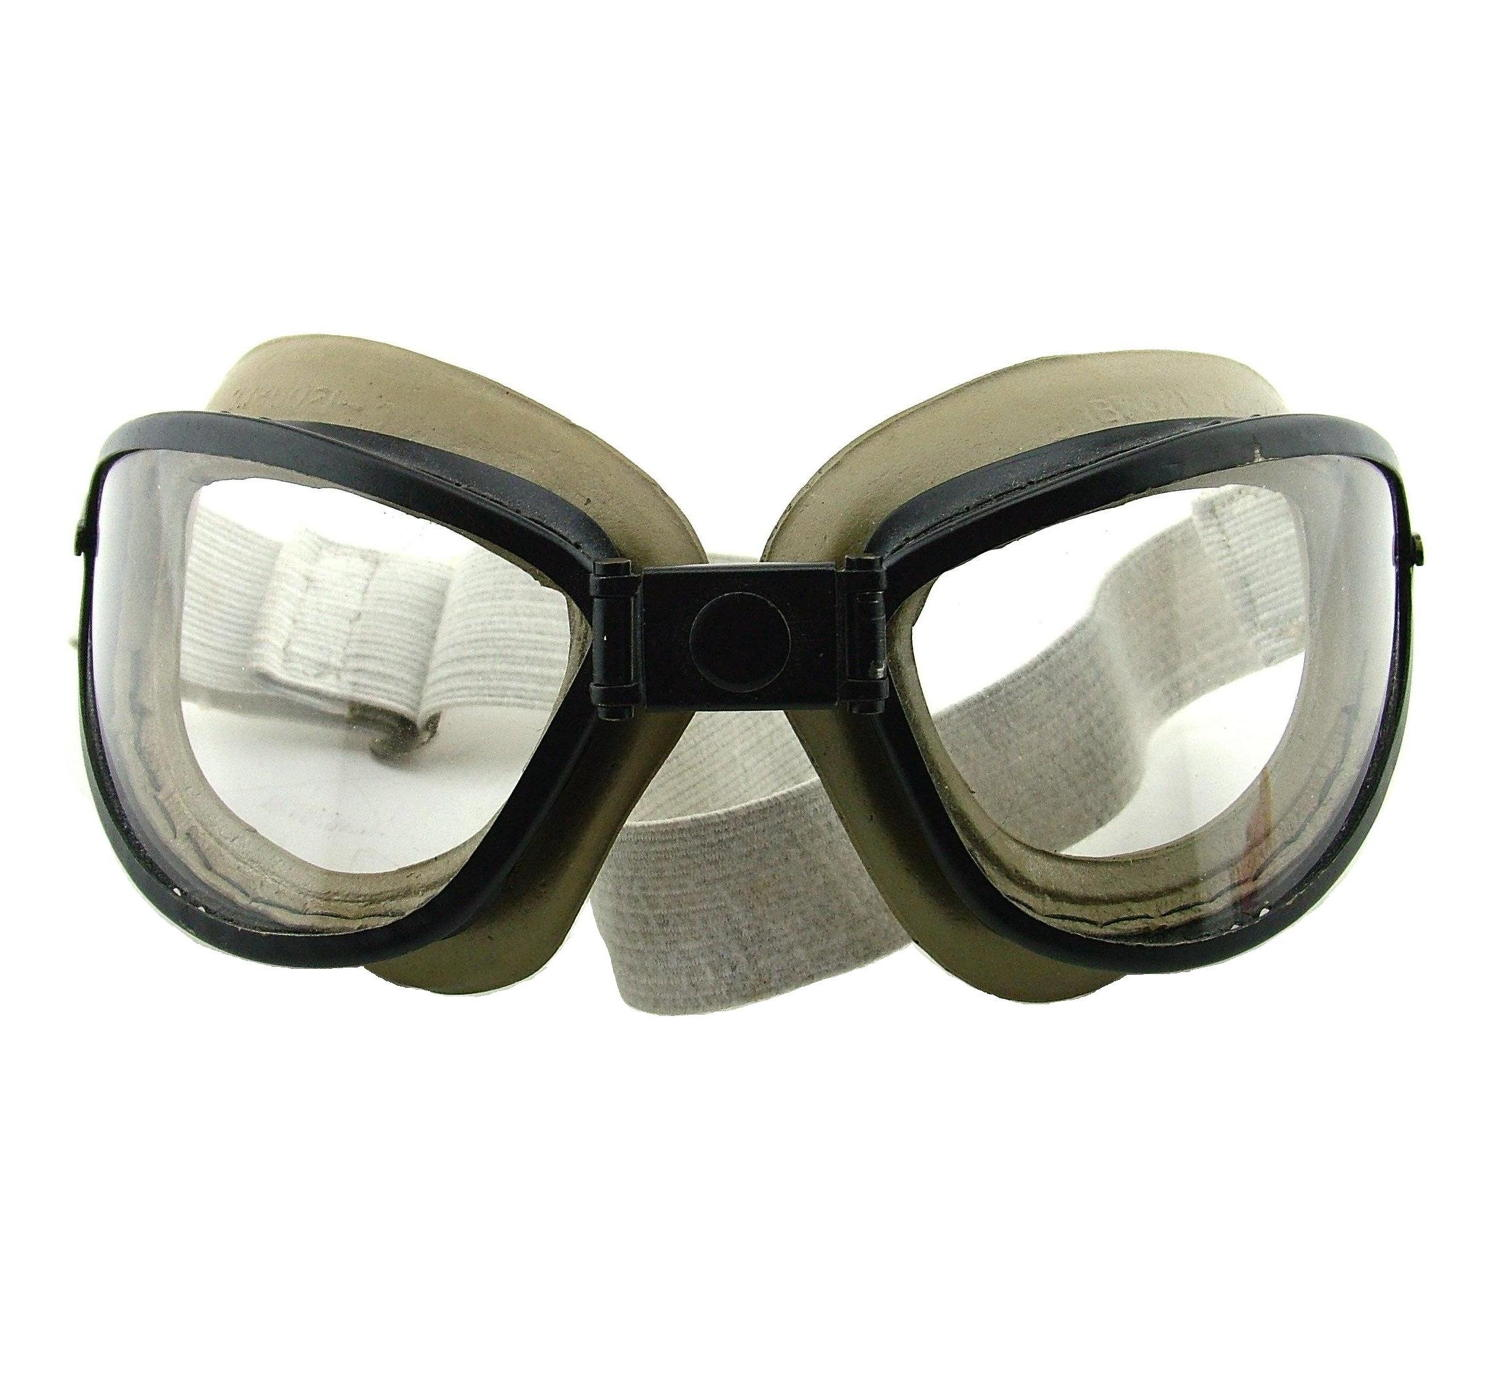 USAAF 'used' Skyway flying goggles